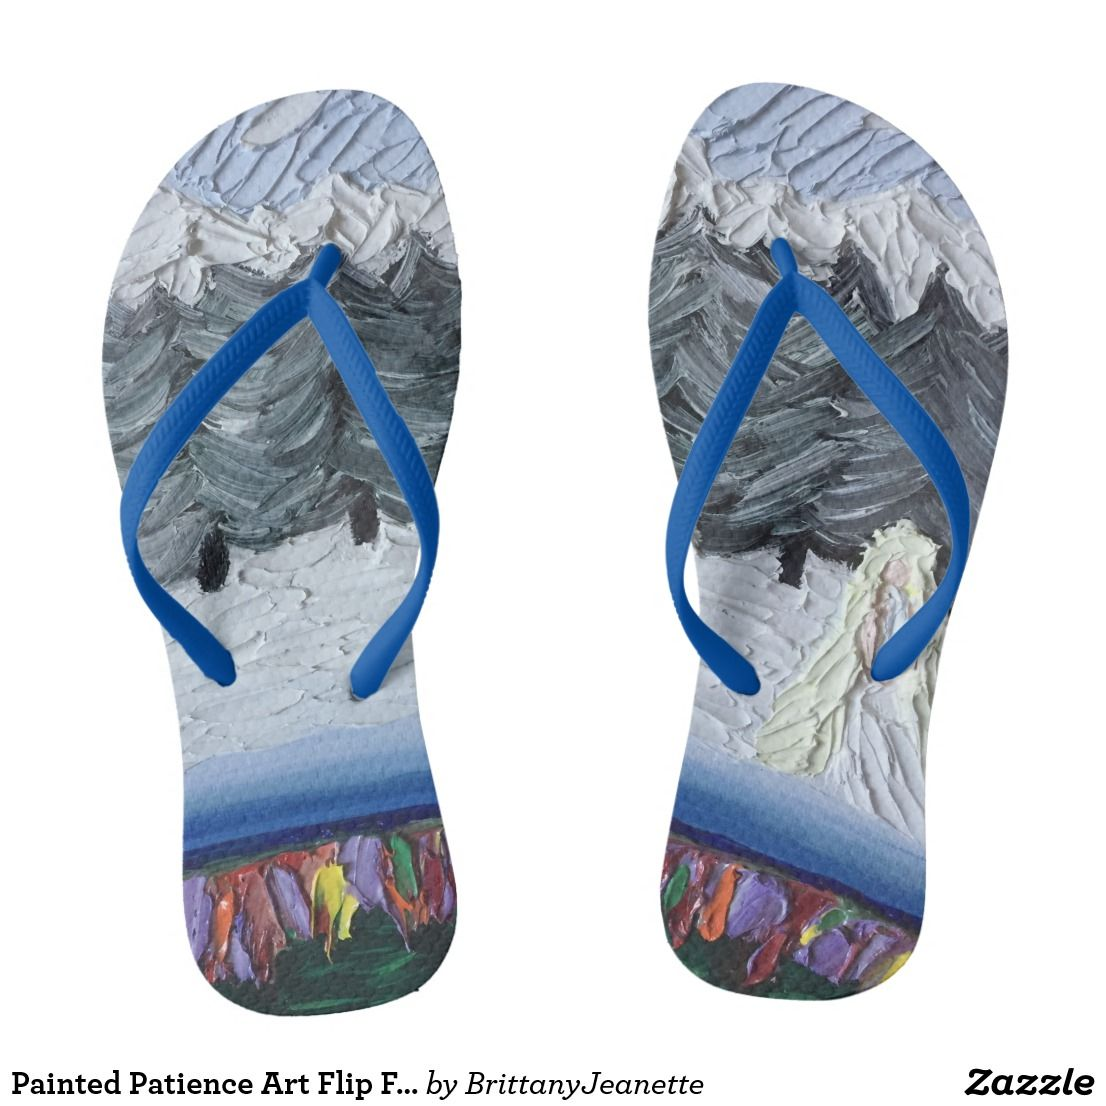 611b10b392dc7 Painted Patience Art Flip Flops - Many Strap Colors and Thickness Choices -  Seven Contrary Virtues - Little Girl waits in pine trees cold winter snow  ...